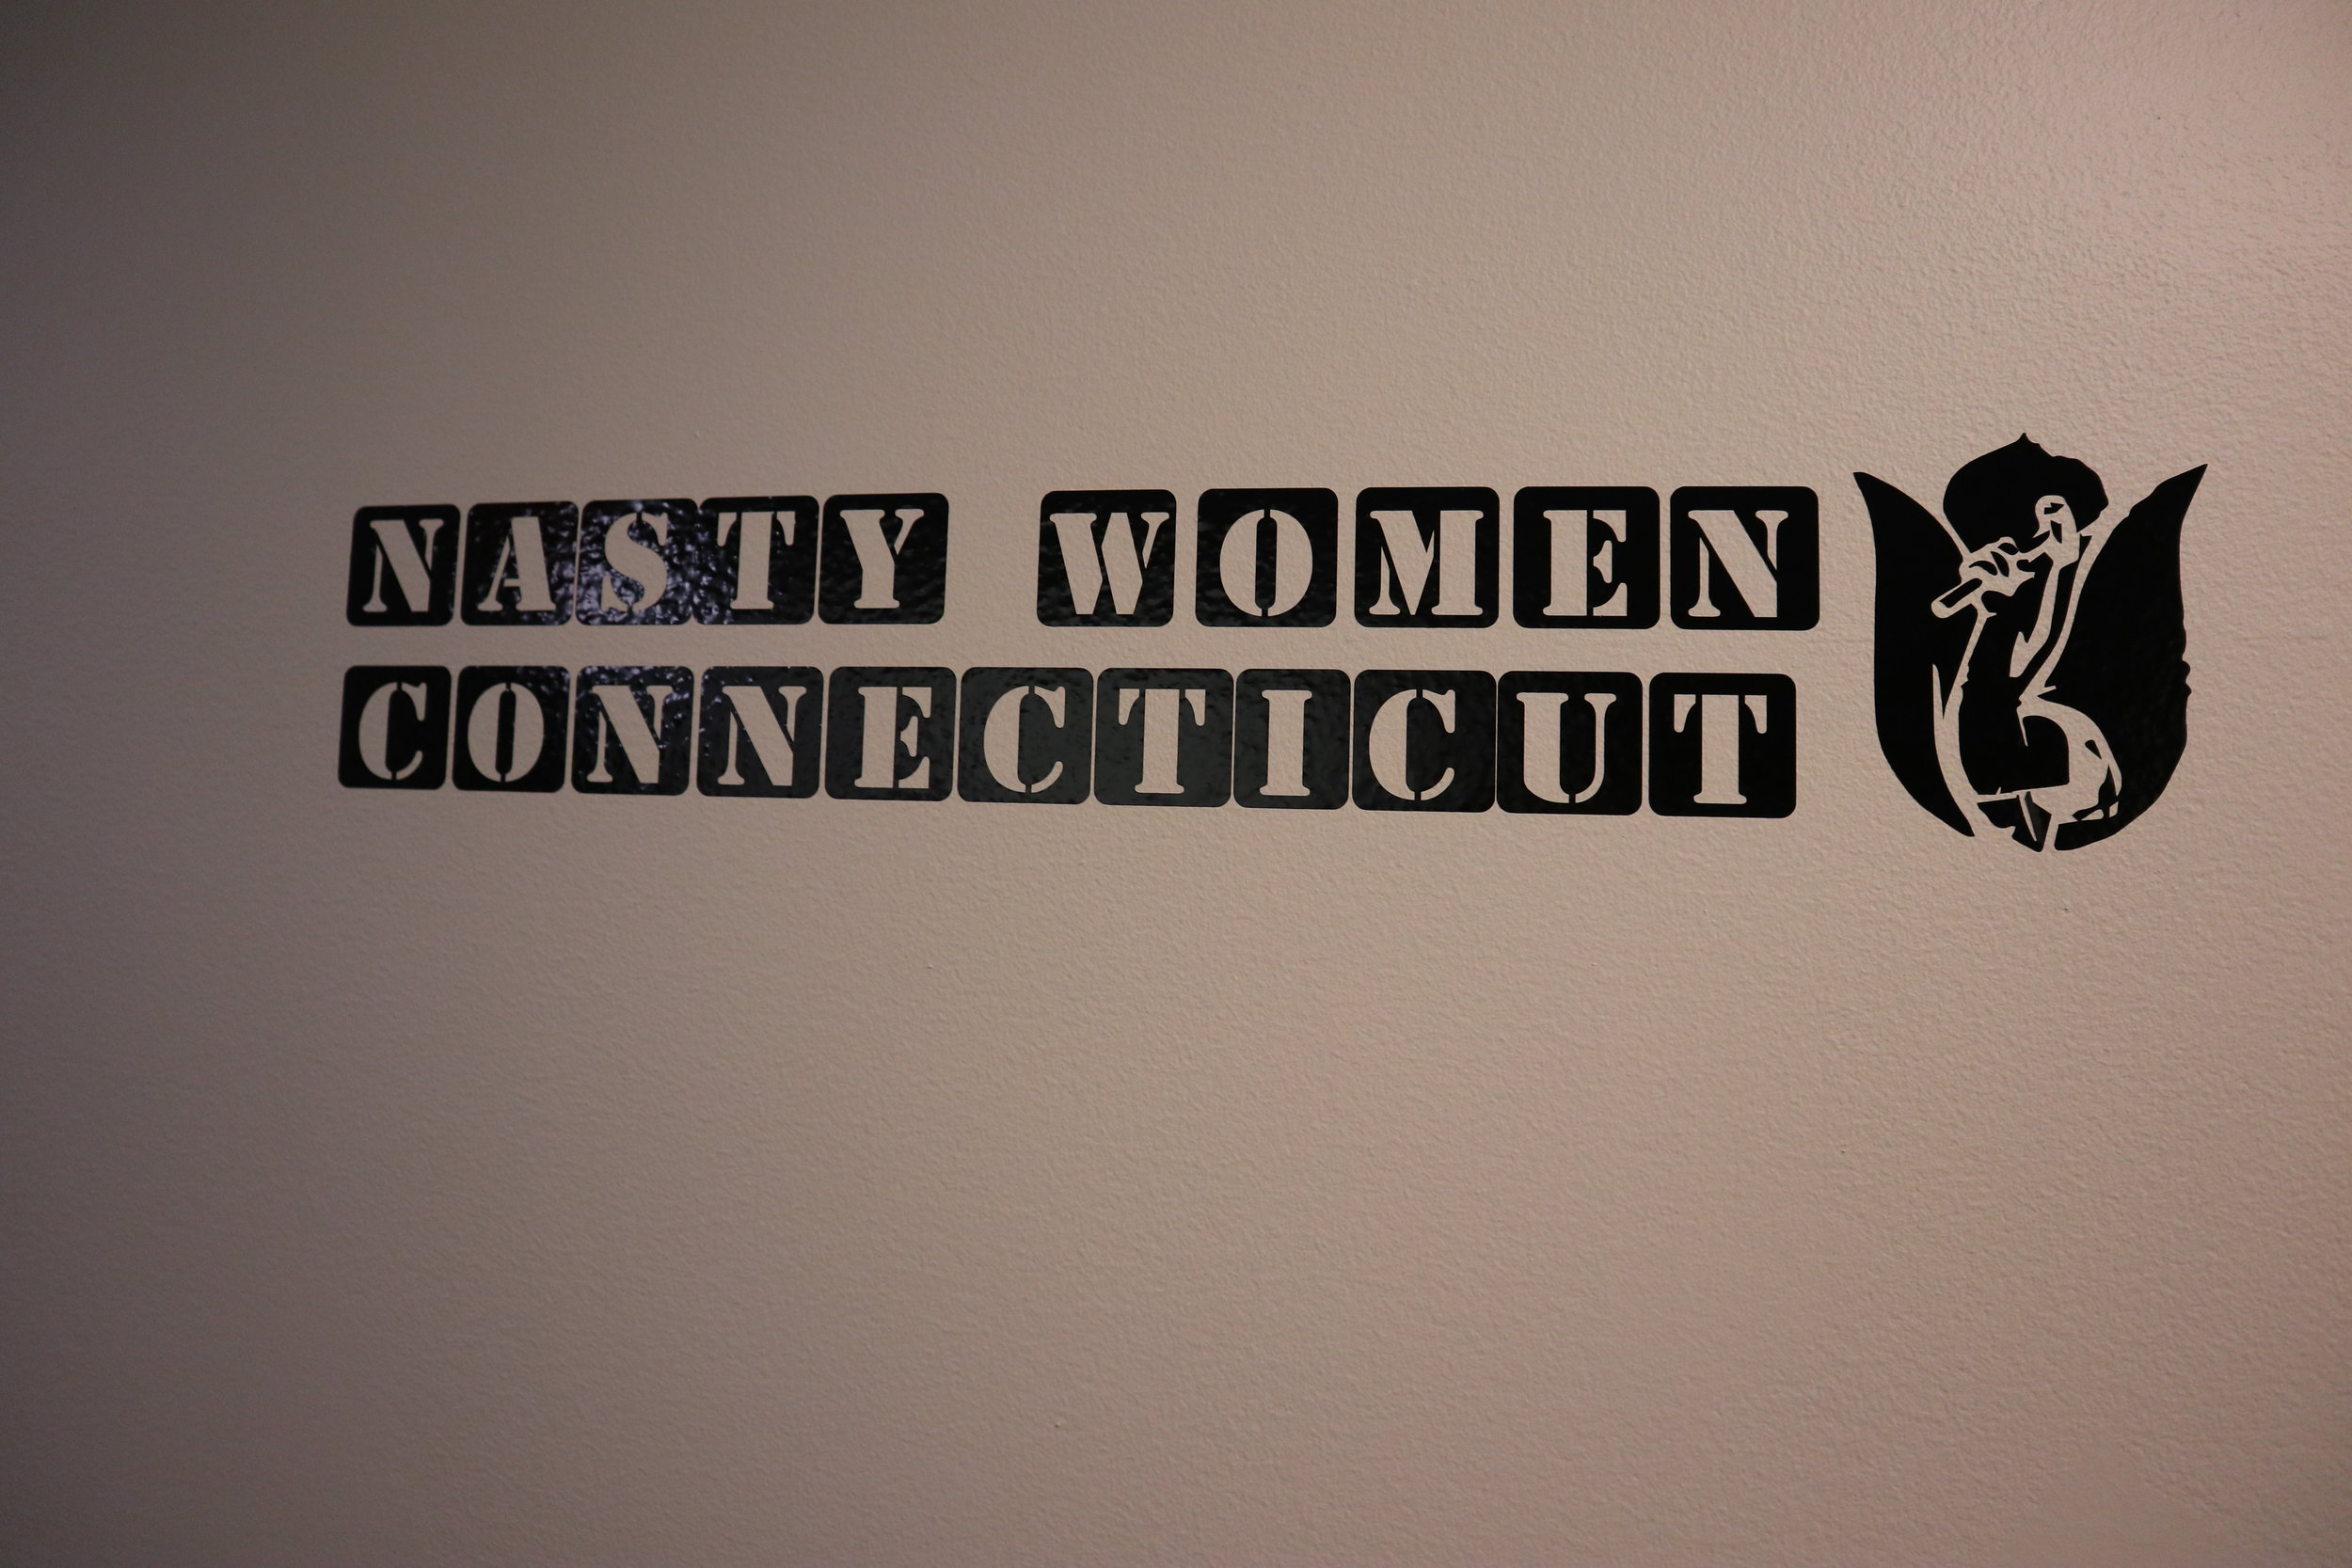 Vinyl sign created by Nathan Lewis  Image courtesy of Justin DeLand